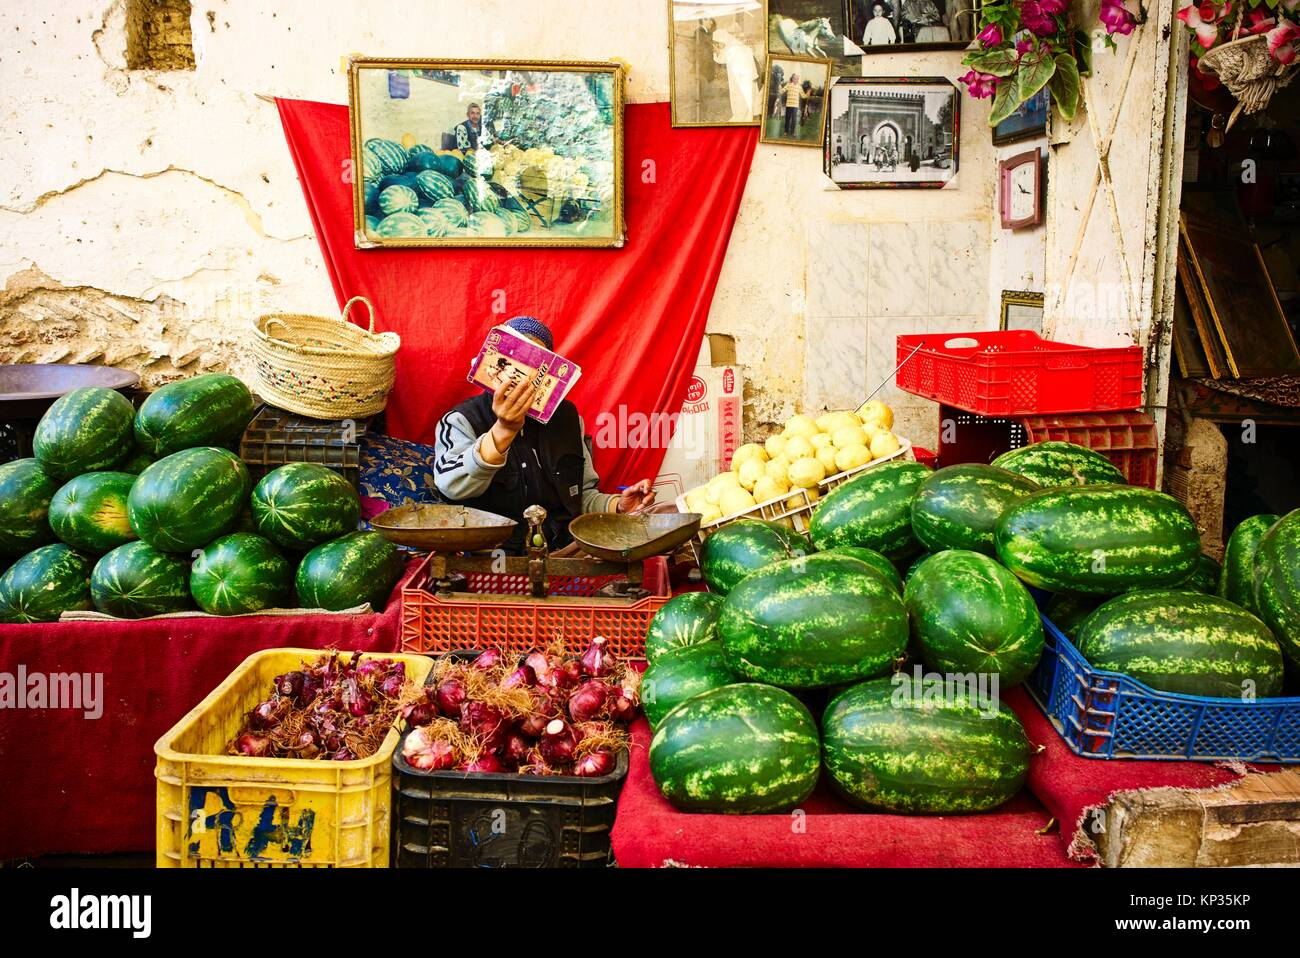 Selling watermelons in the medina of Fez, Morocco - Stock Image